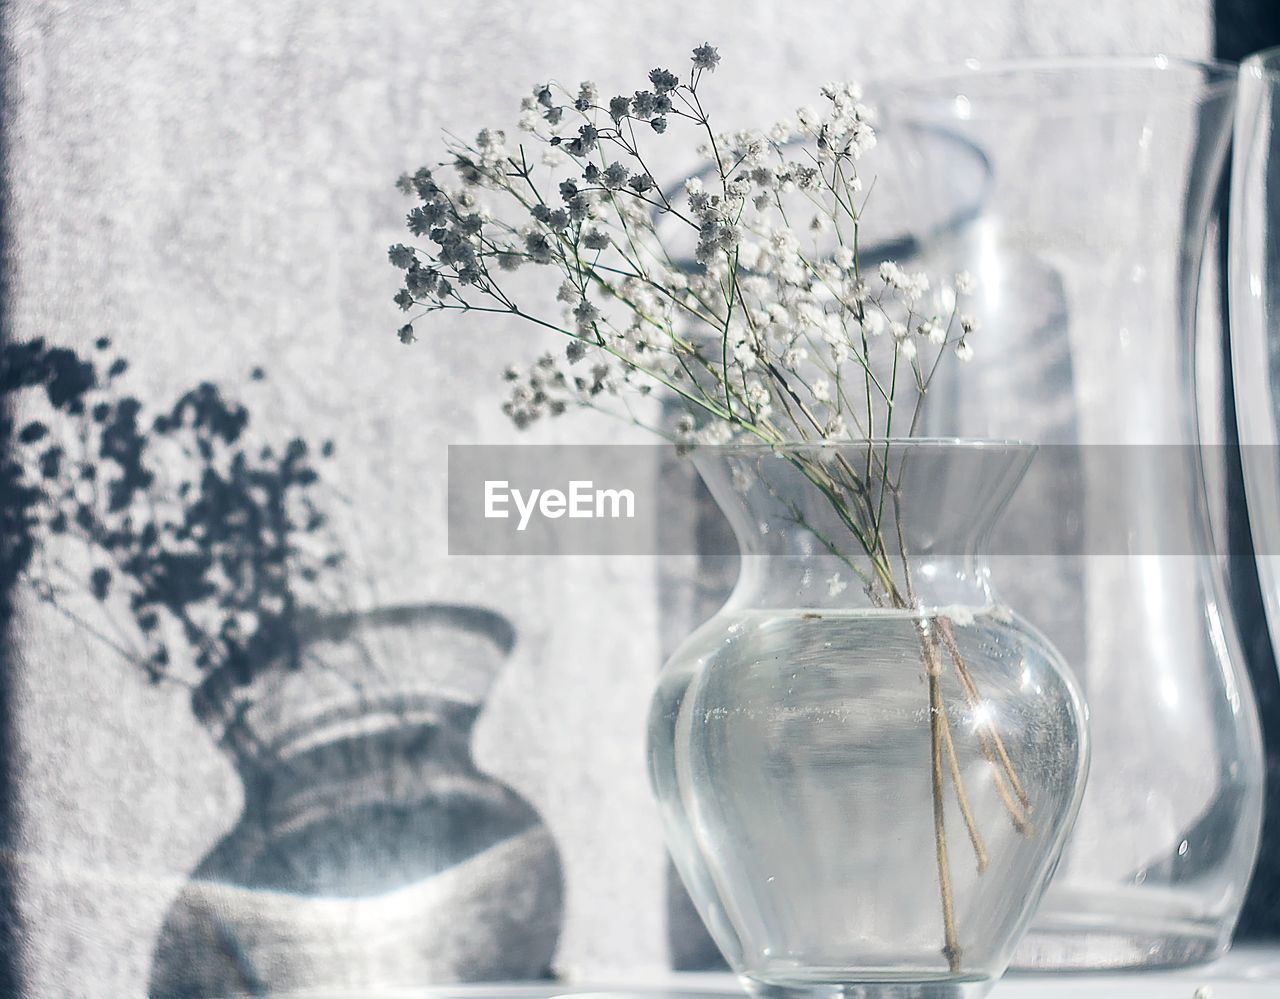 vase, plant, nature, glass - material, transparent, no people, indoors, flower, close-up, flowering plant, beauty in nature, vulnerability, fragility, table, decoration, growth, day, flower head, arrangement, glass, flower arrangement